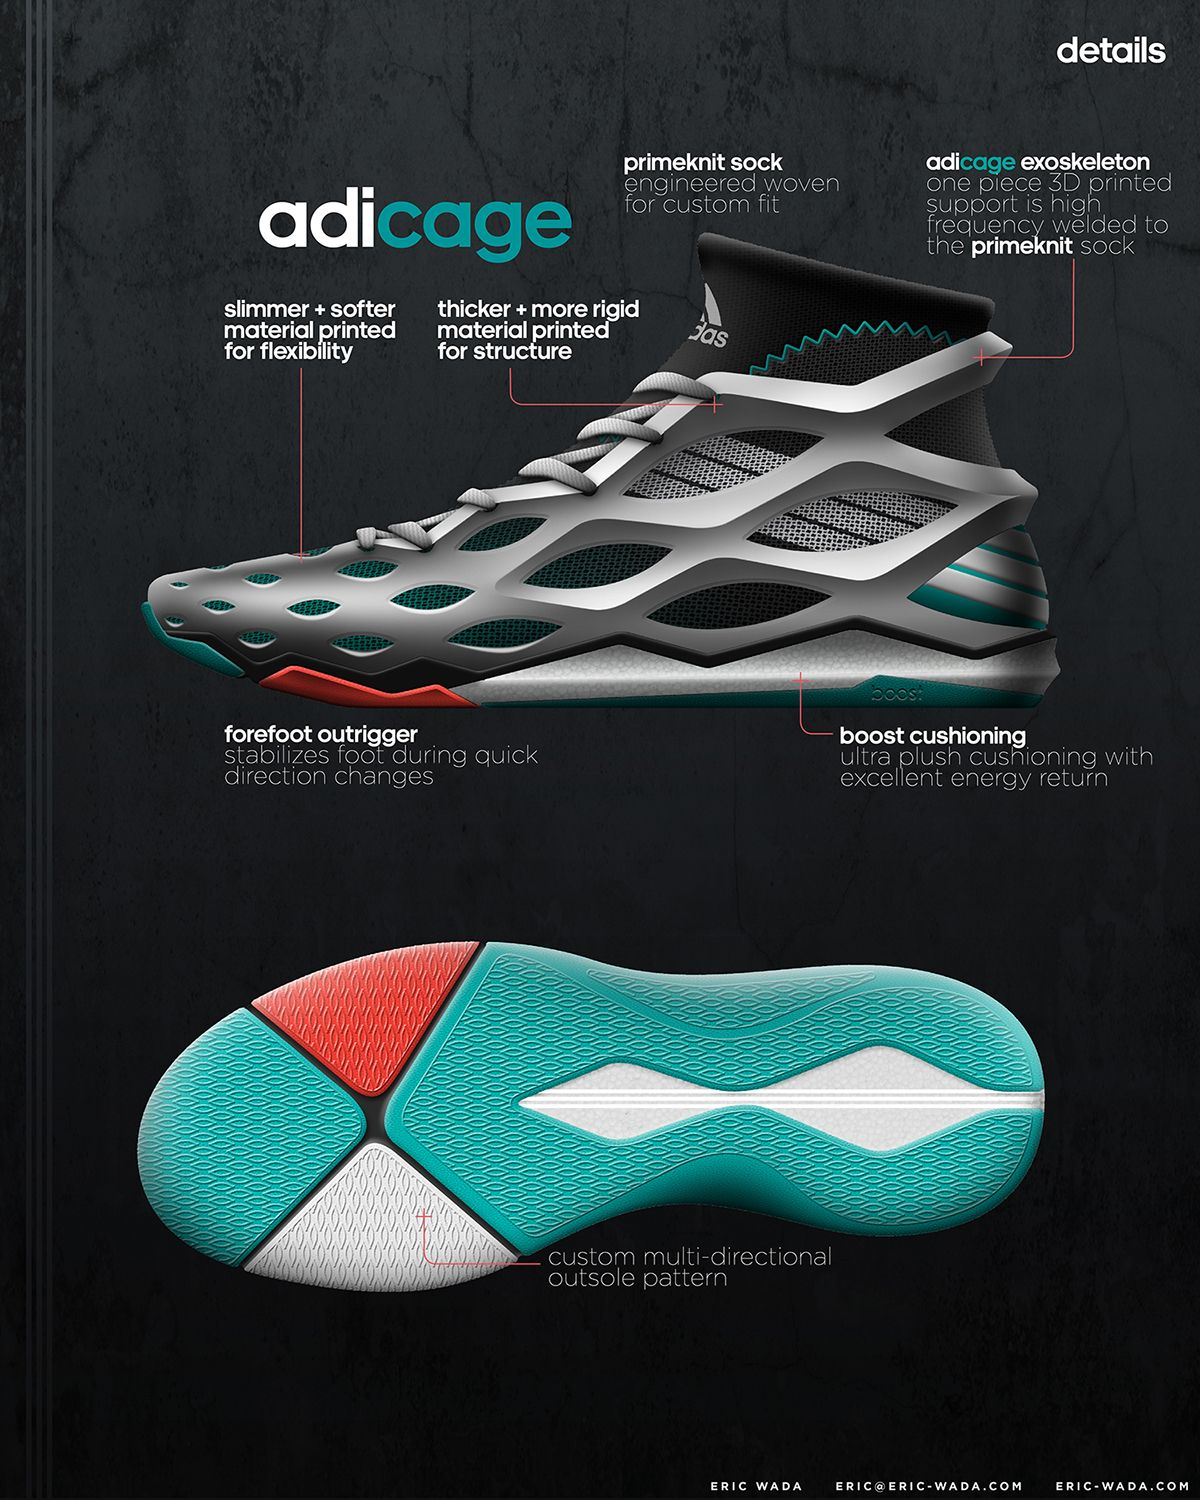 adidas basketball shoe concept with 3D printed exoskeleton